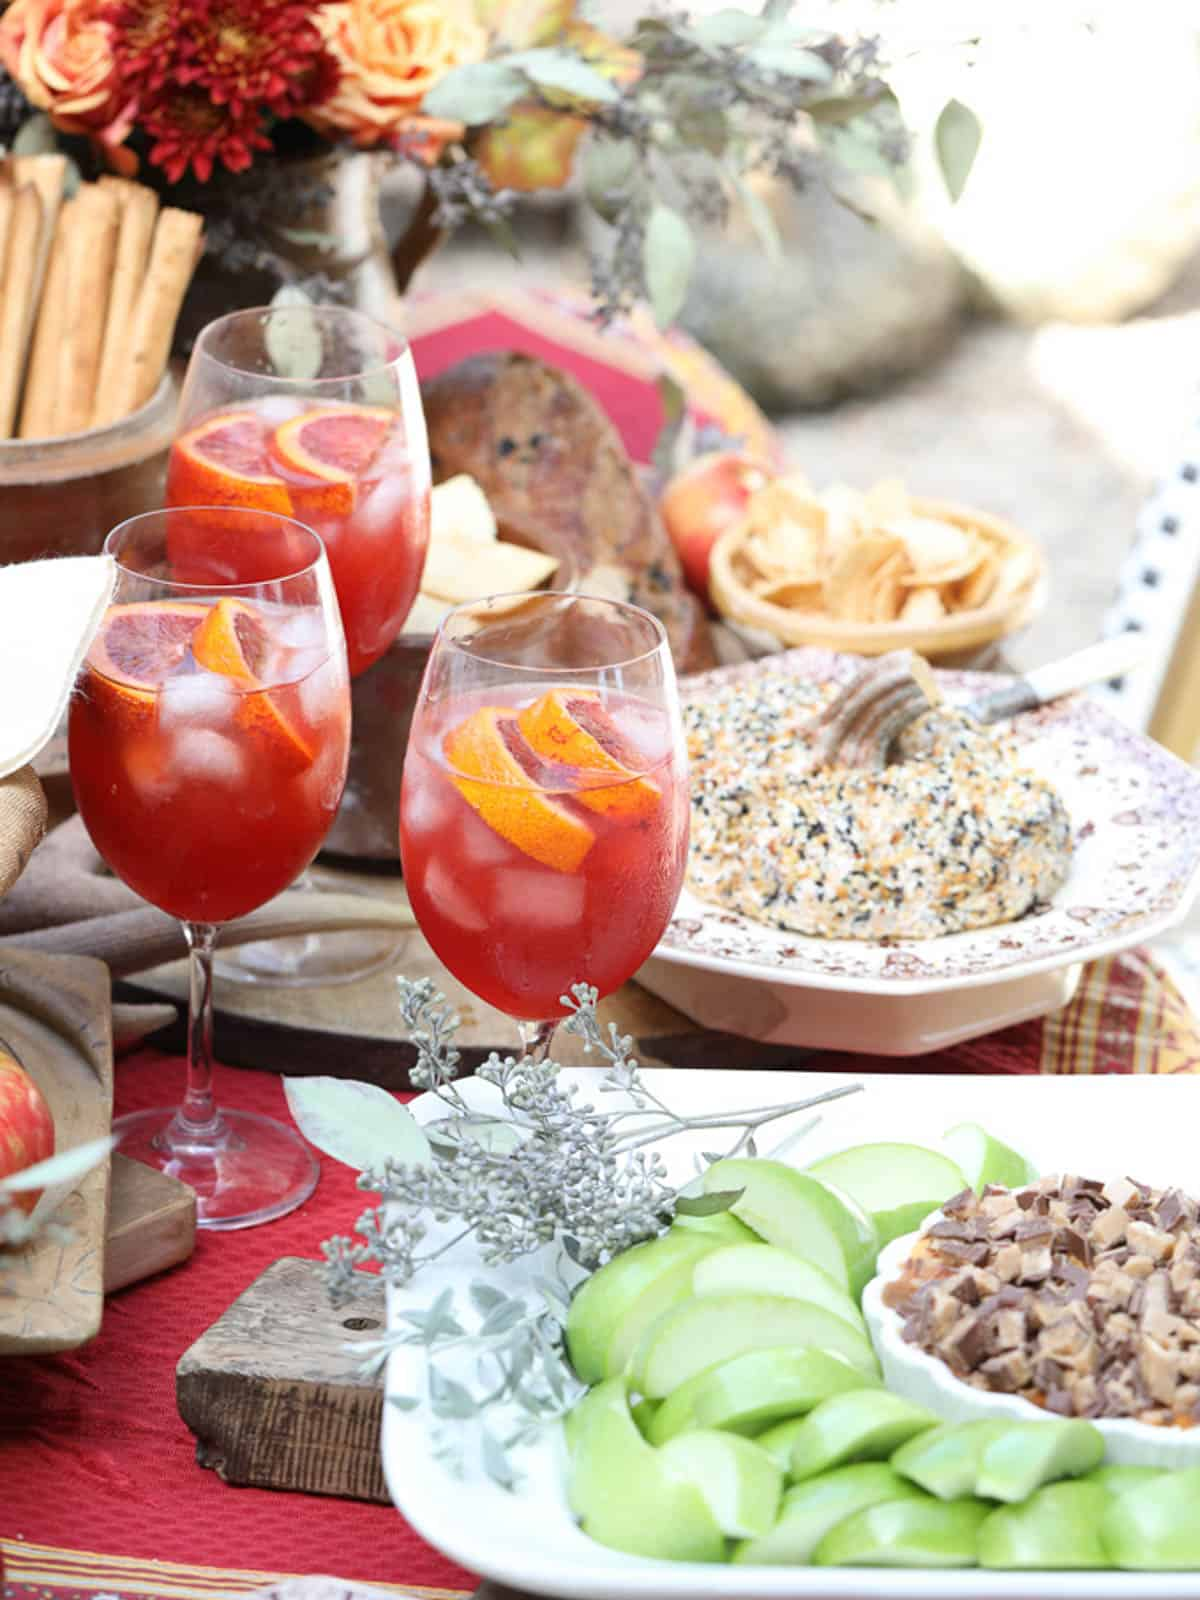 A Fall table filled with appetizers and Aperol Spritz drinks at an outdoor party.